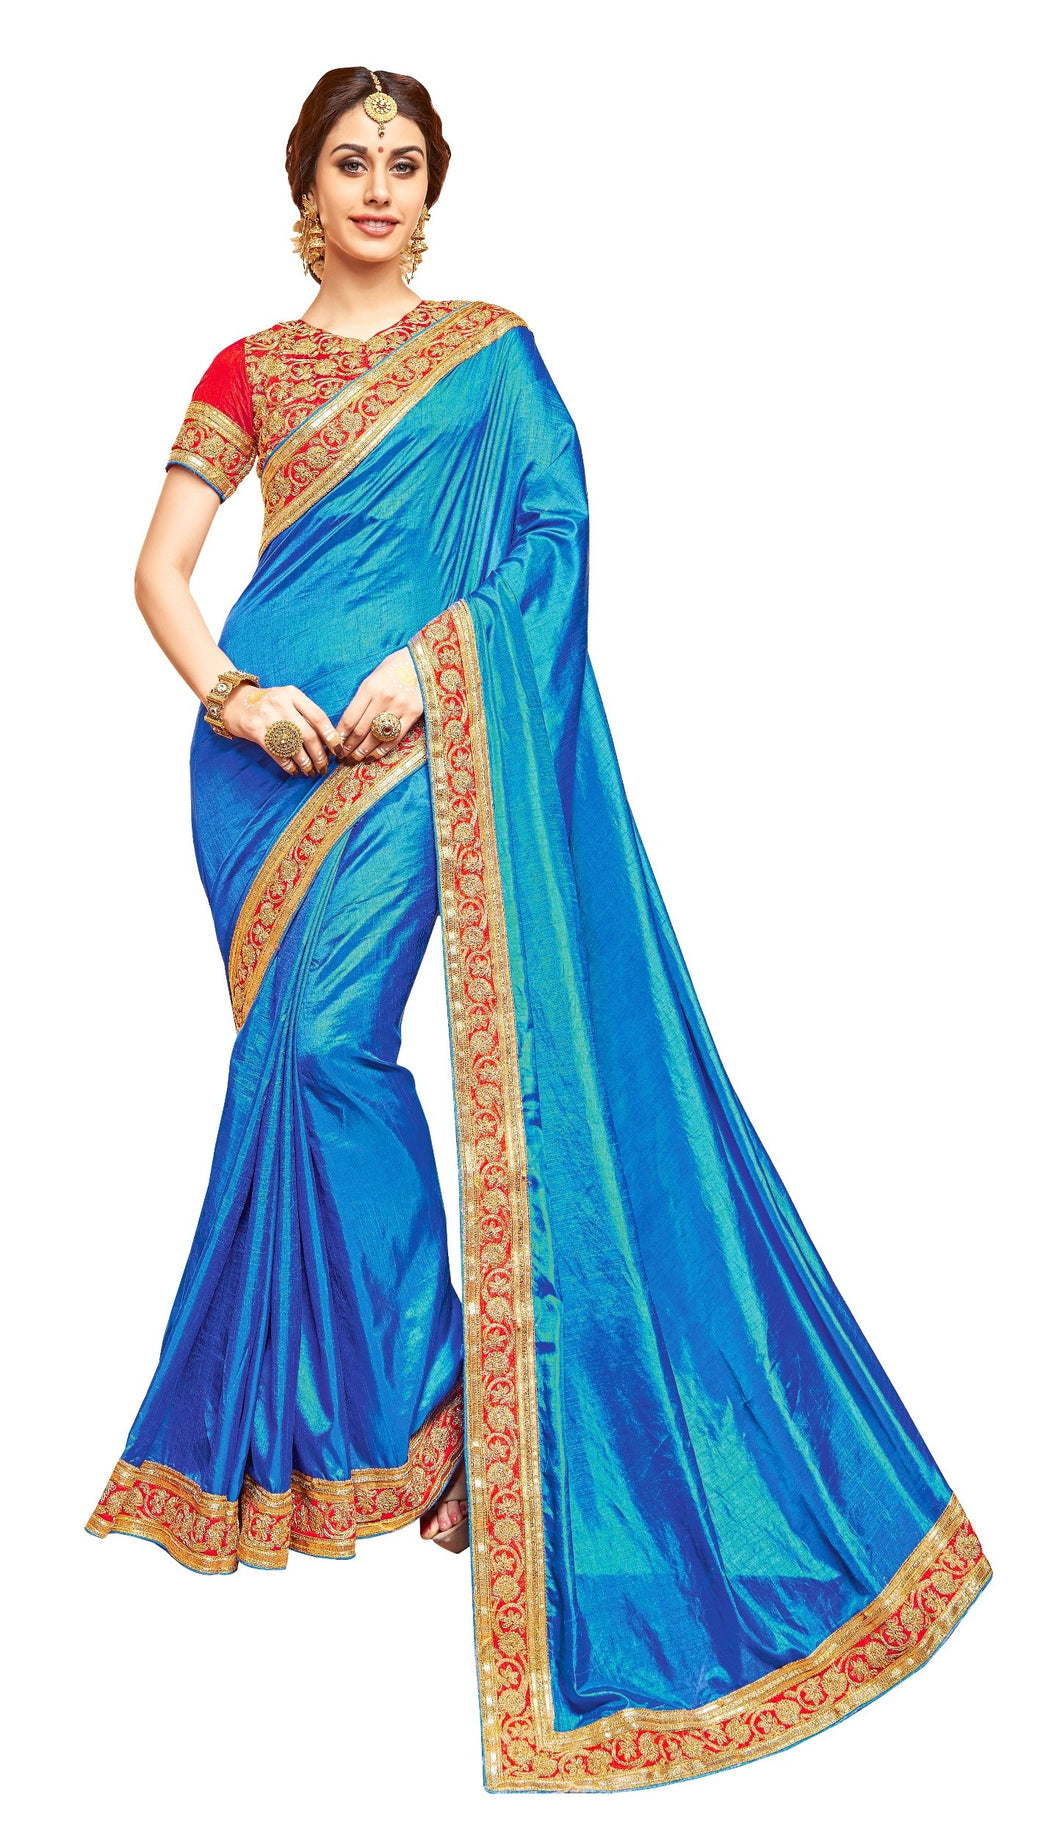 Desiger Dupion Indian Art Silk Blue Border Work Saree SC7056 - Ethnic's By Anvi Creations